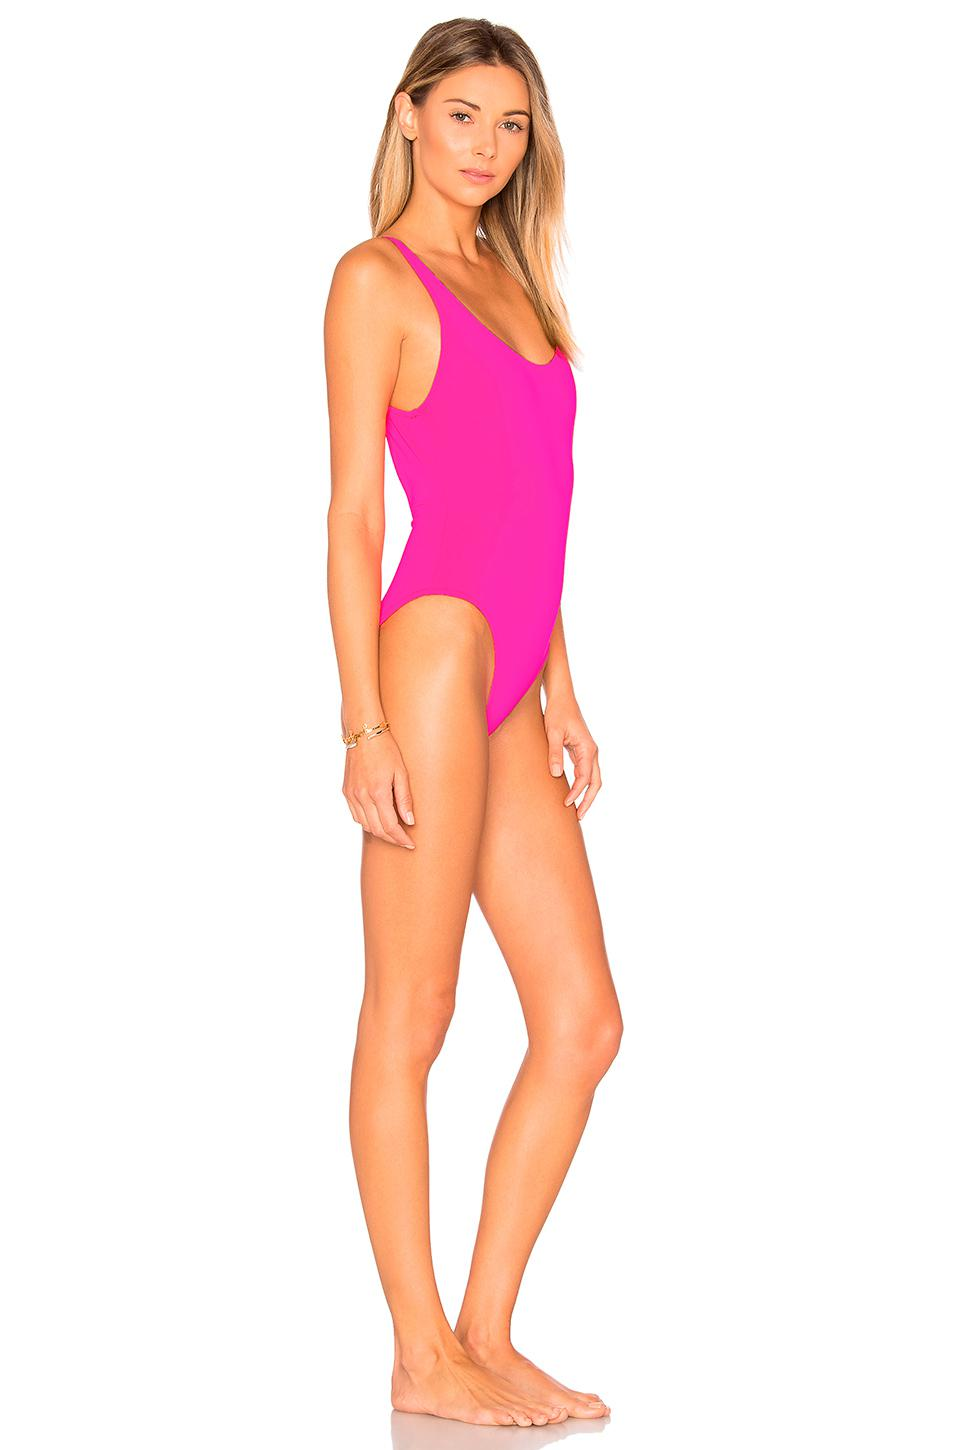 daafd1bfe09 Solid & Striped The Anne Marie One Piece in Pink - Lyst